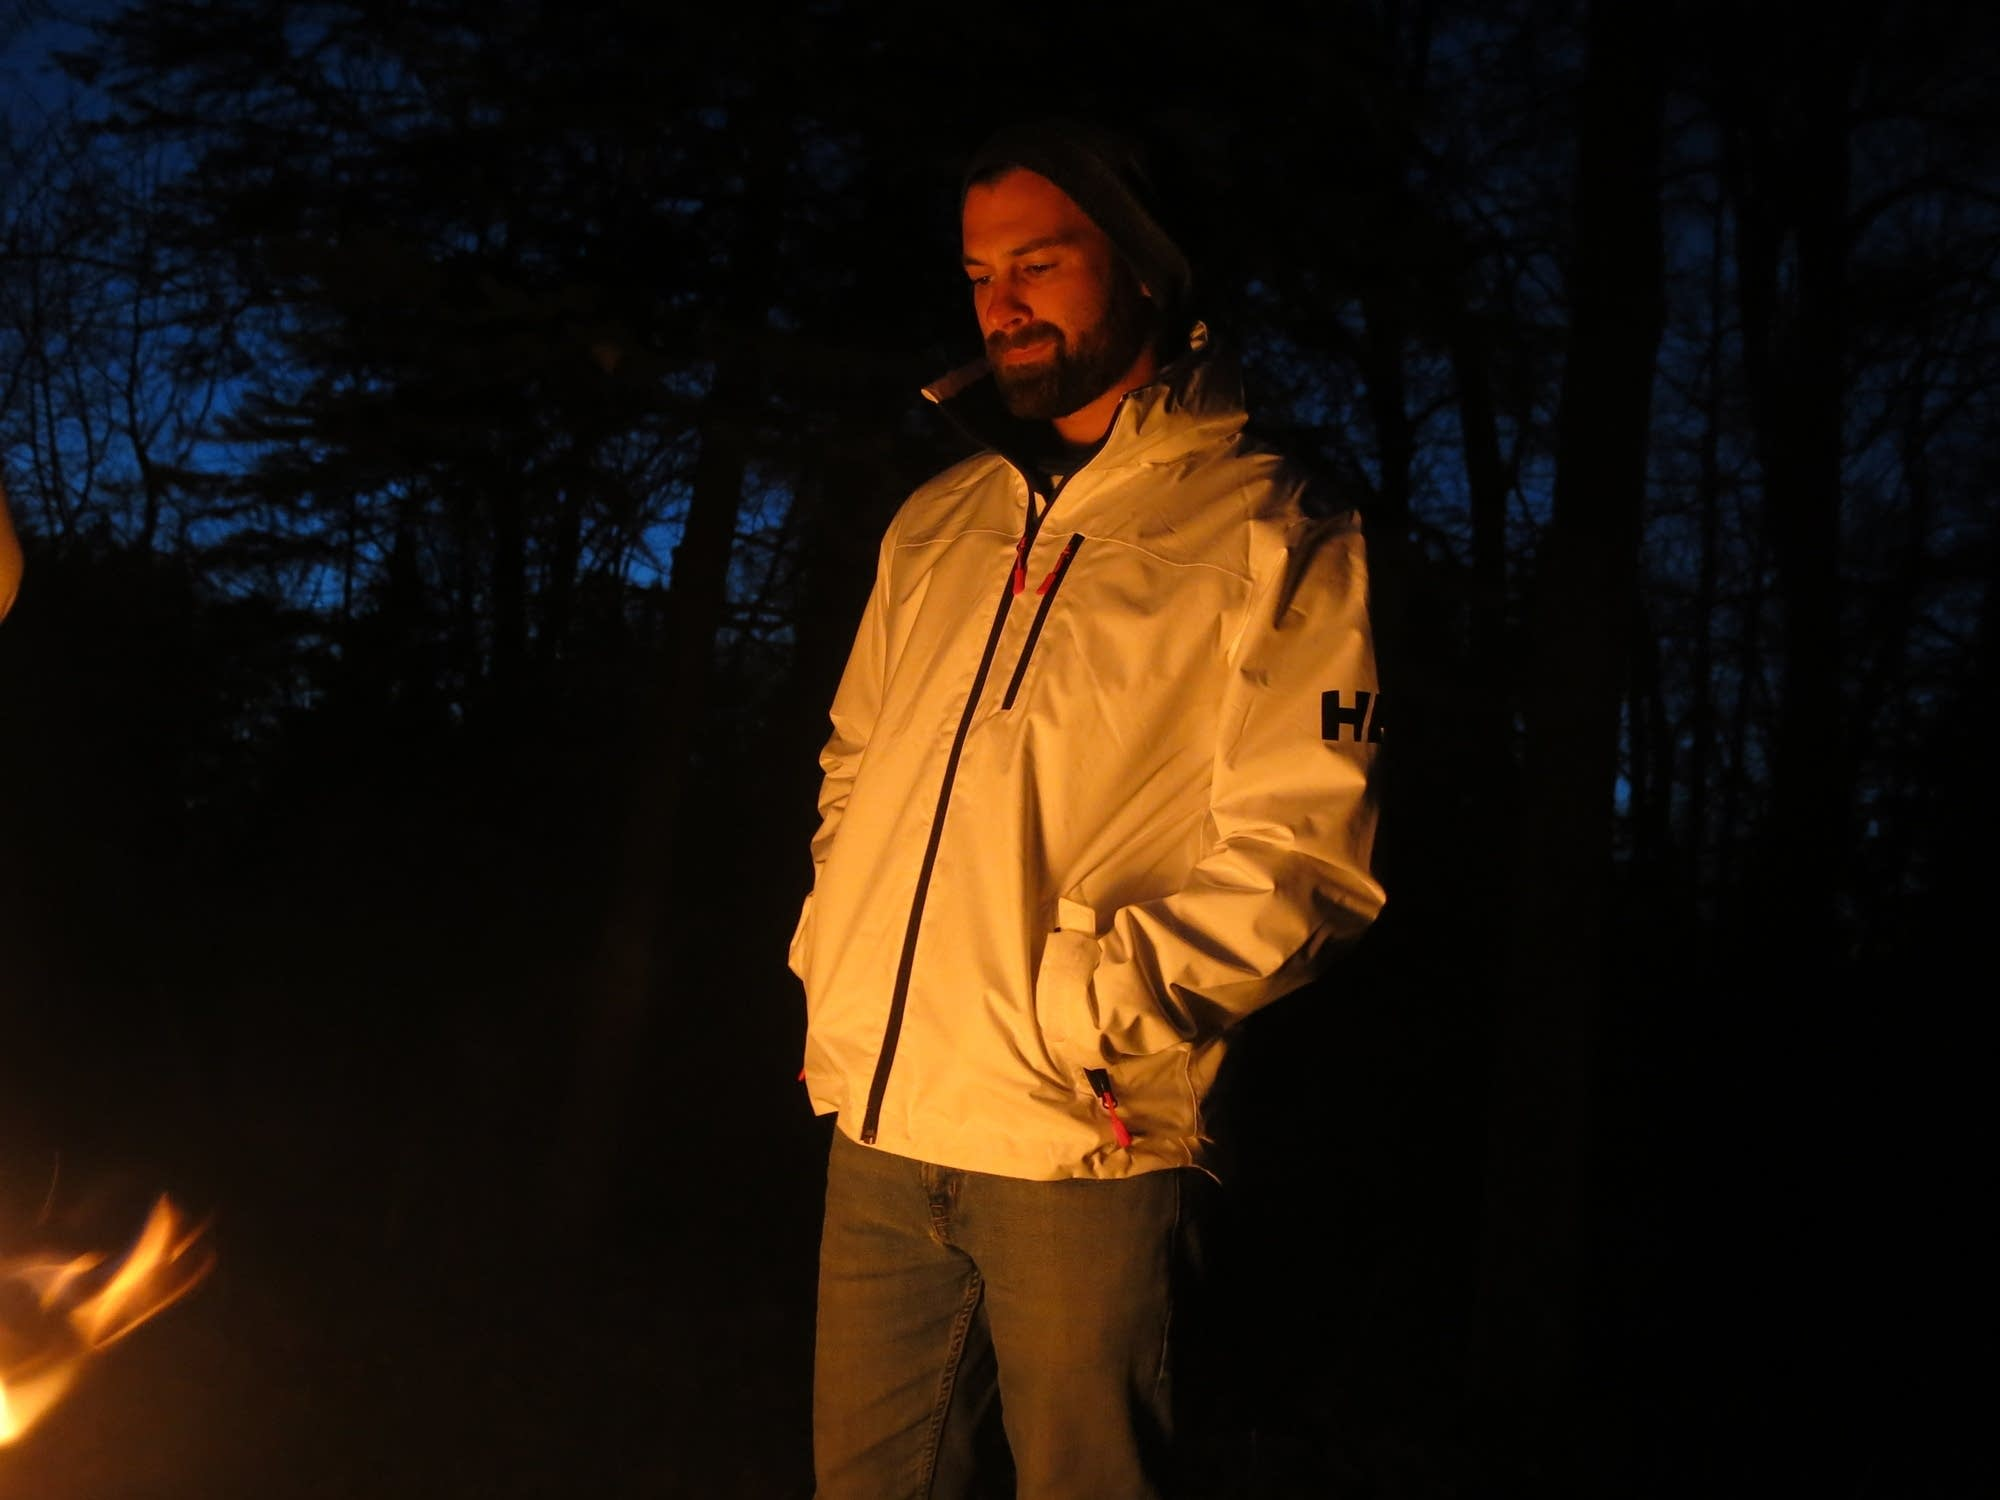 Nate Lastinger stands by the fire in Itasca State Park.